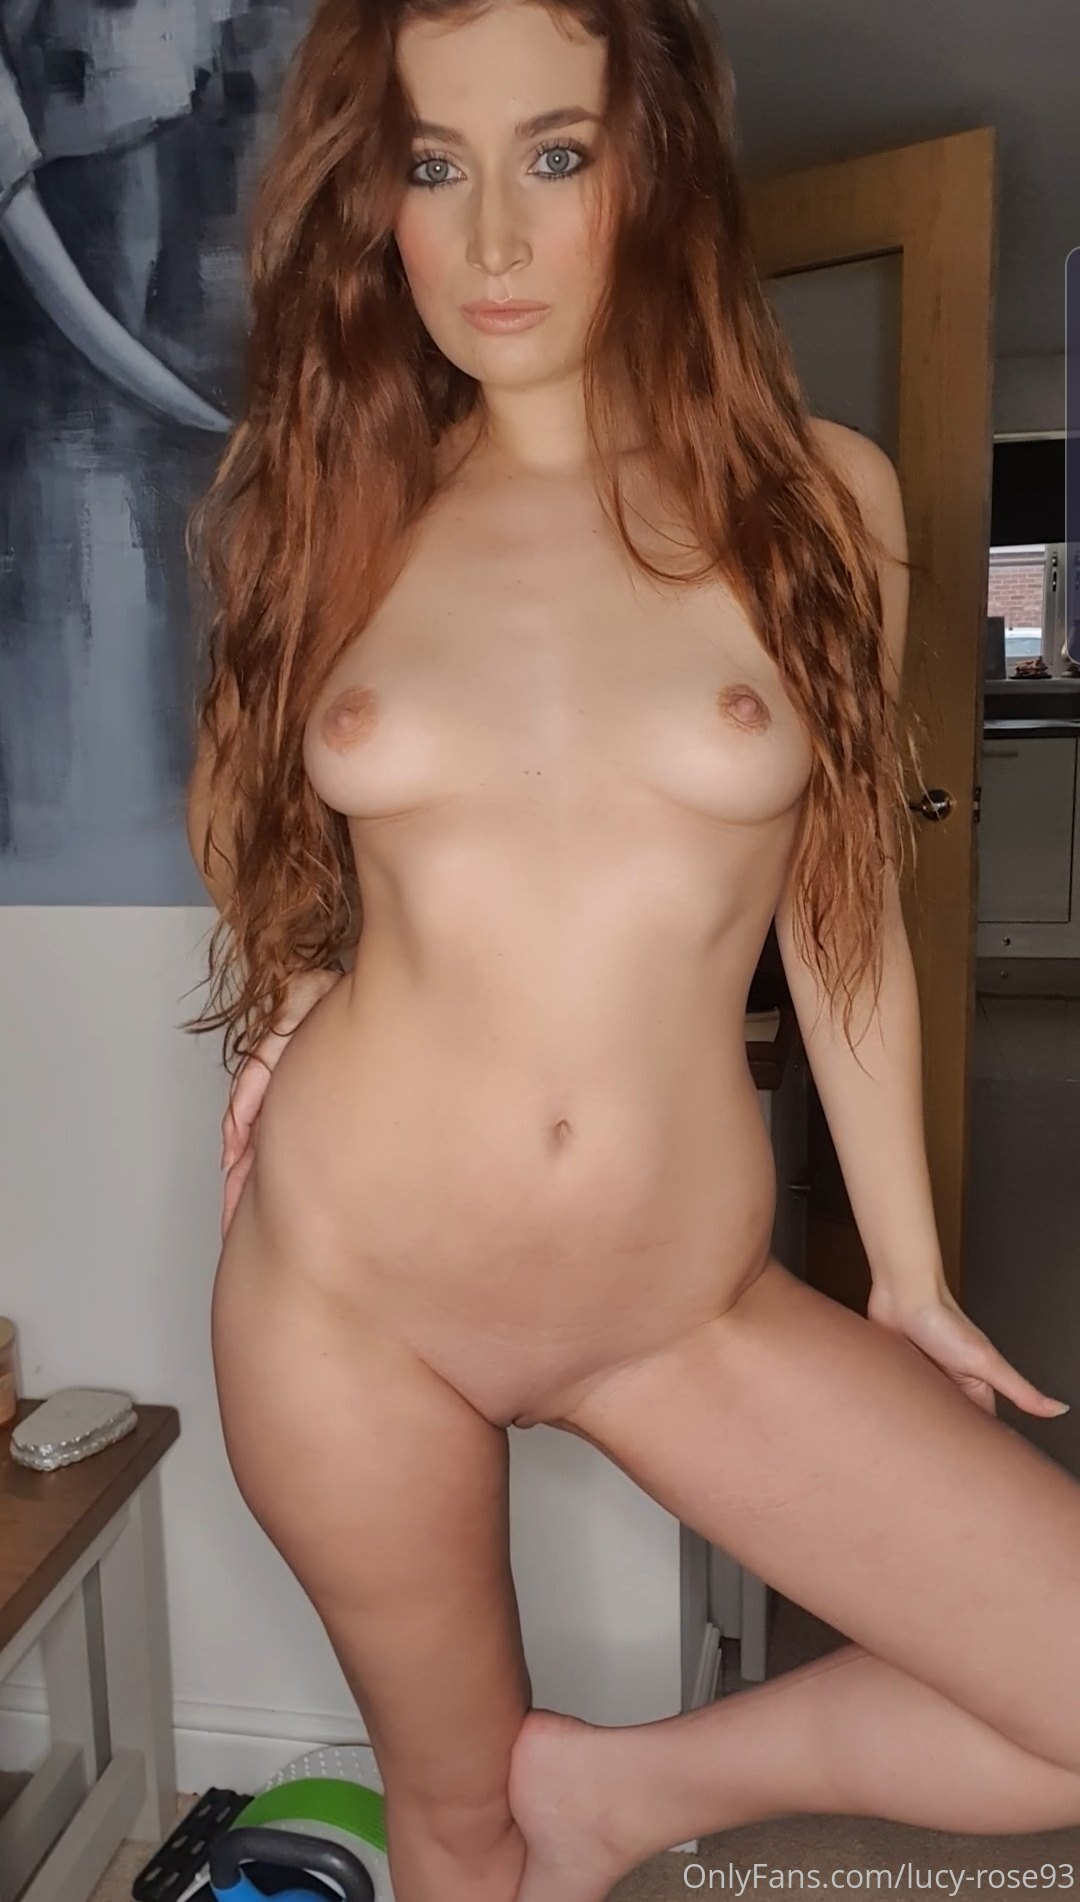 Lucy Rose, Lucy Rose93, Onlyfans 0103